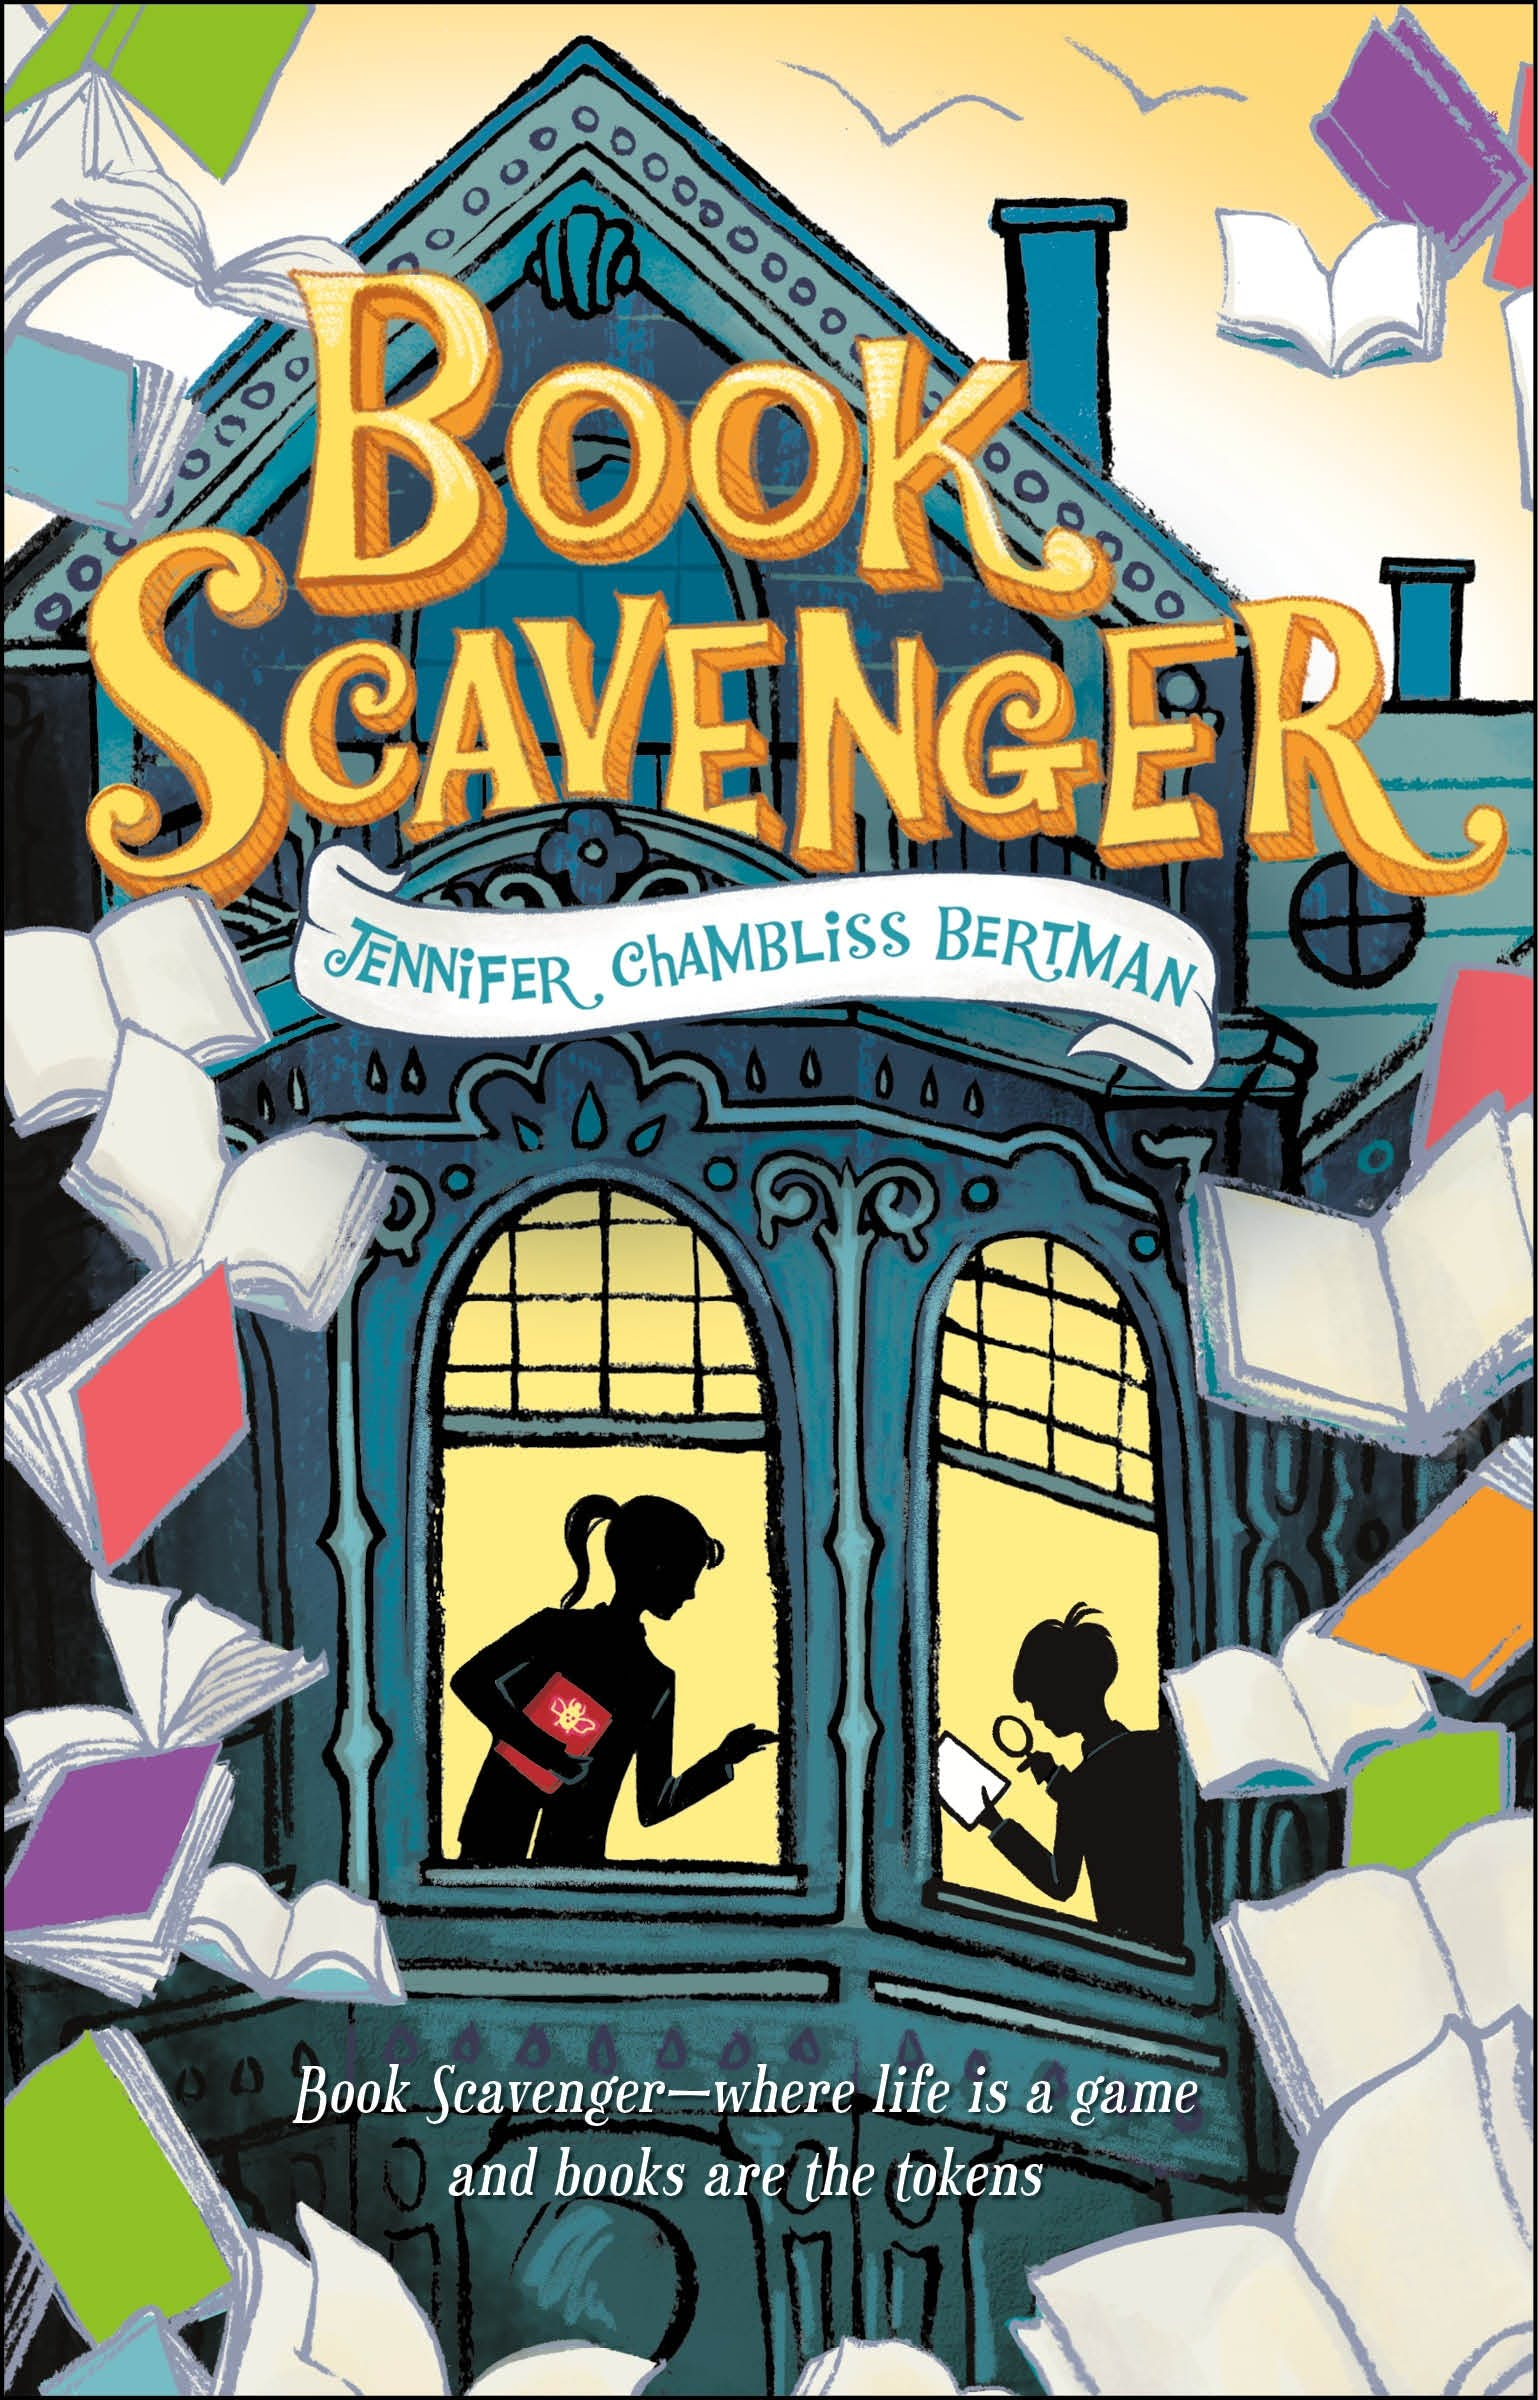 Image of Book Scavenger